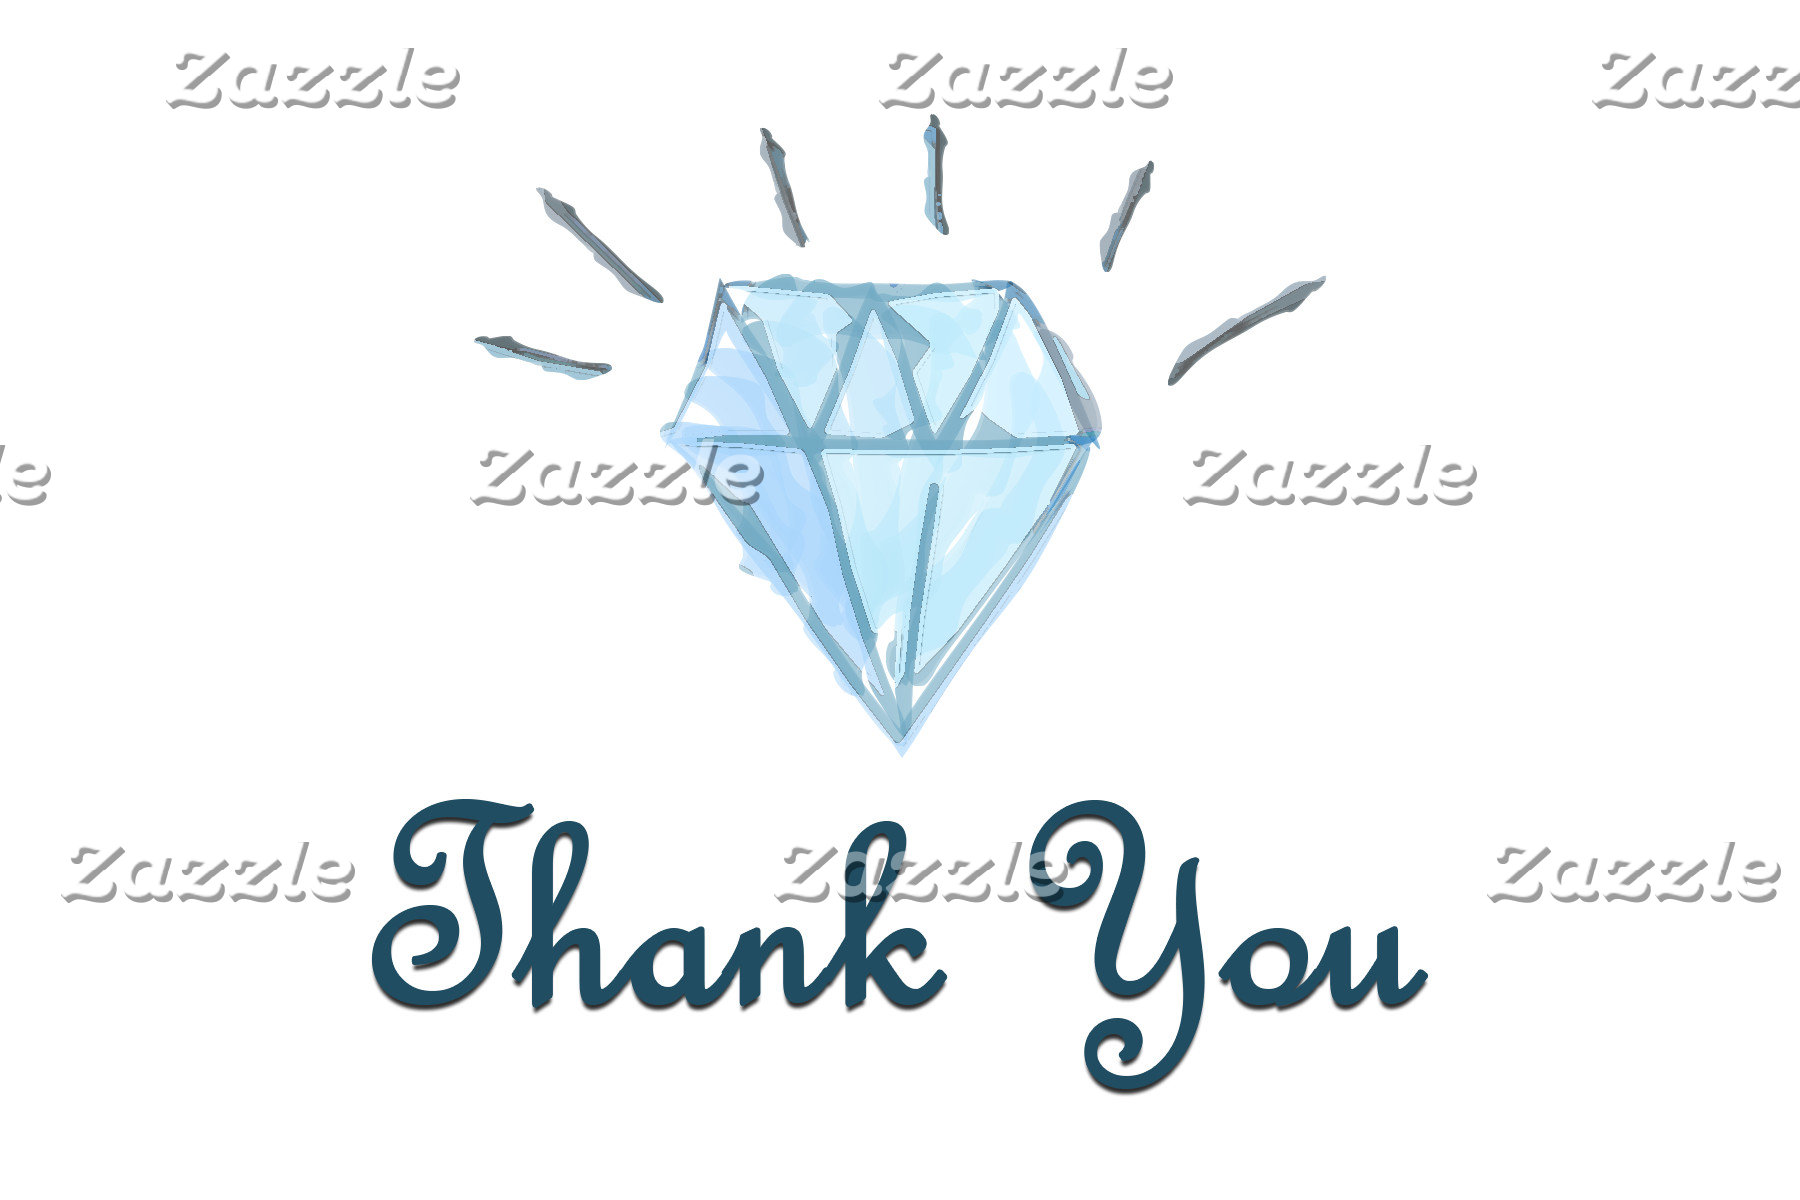 Thank You Cards & Greetings